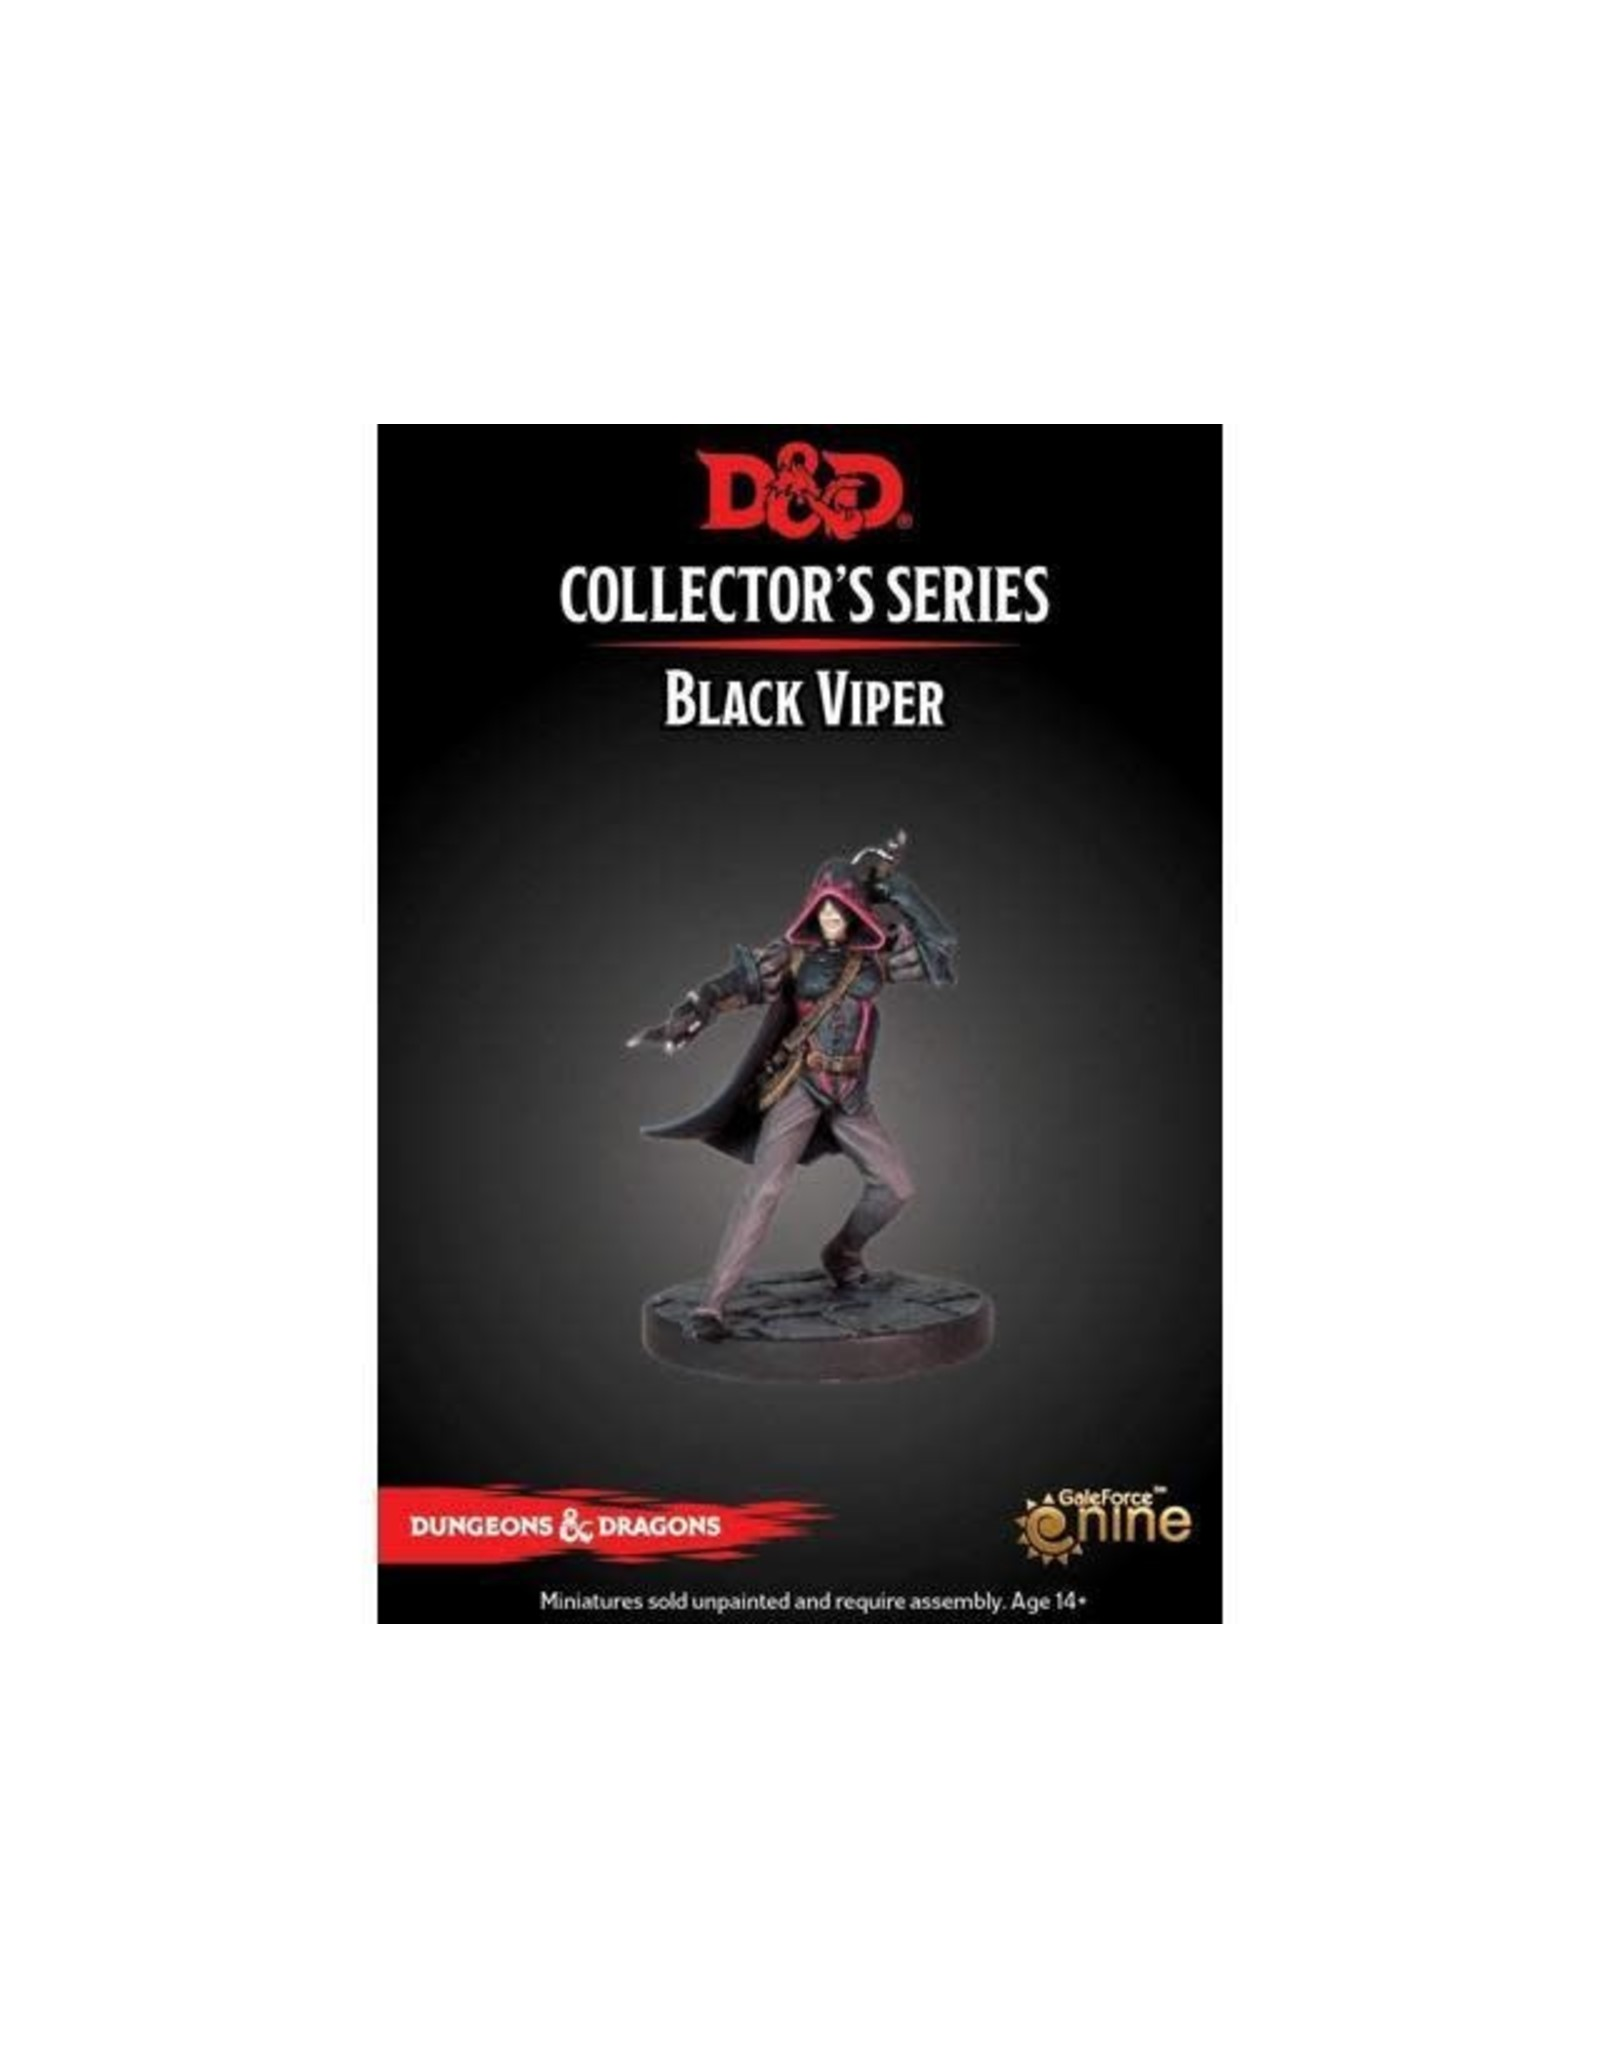 GaleForce9 GF9: D&D Collector's Series: The Black Viper